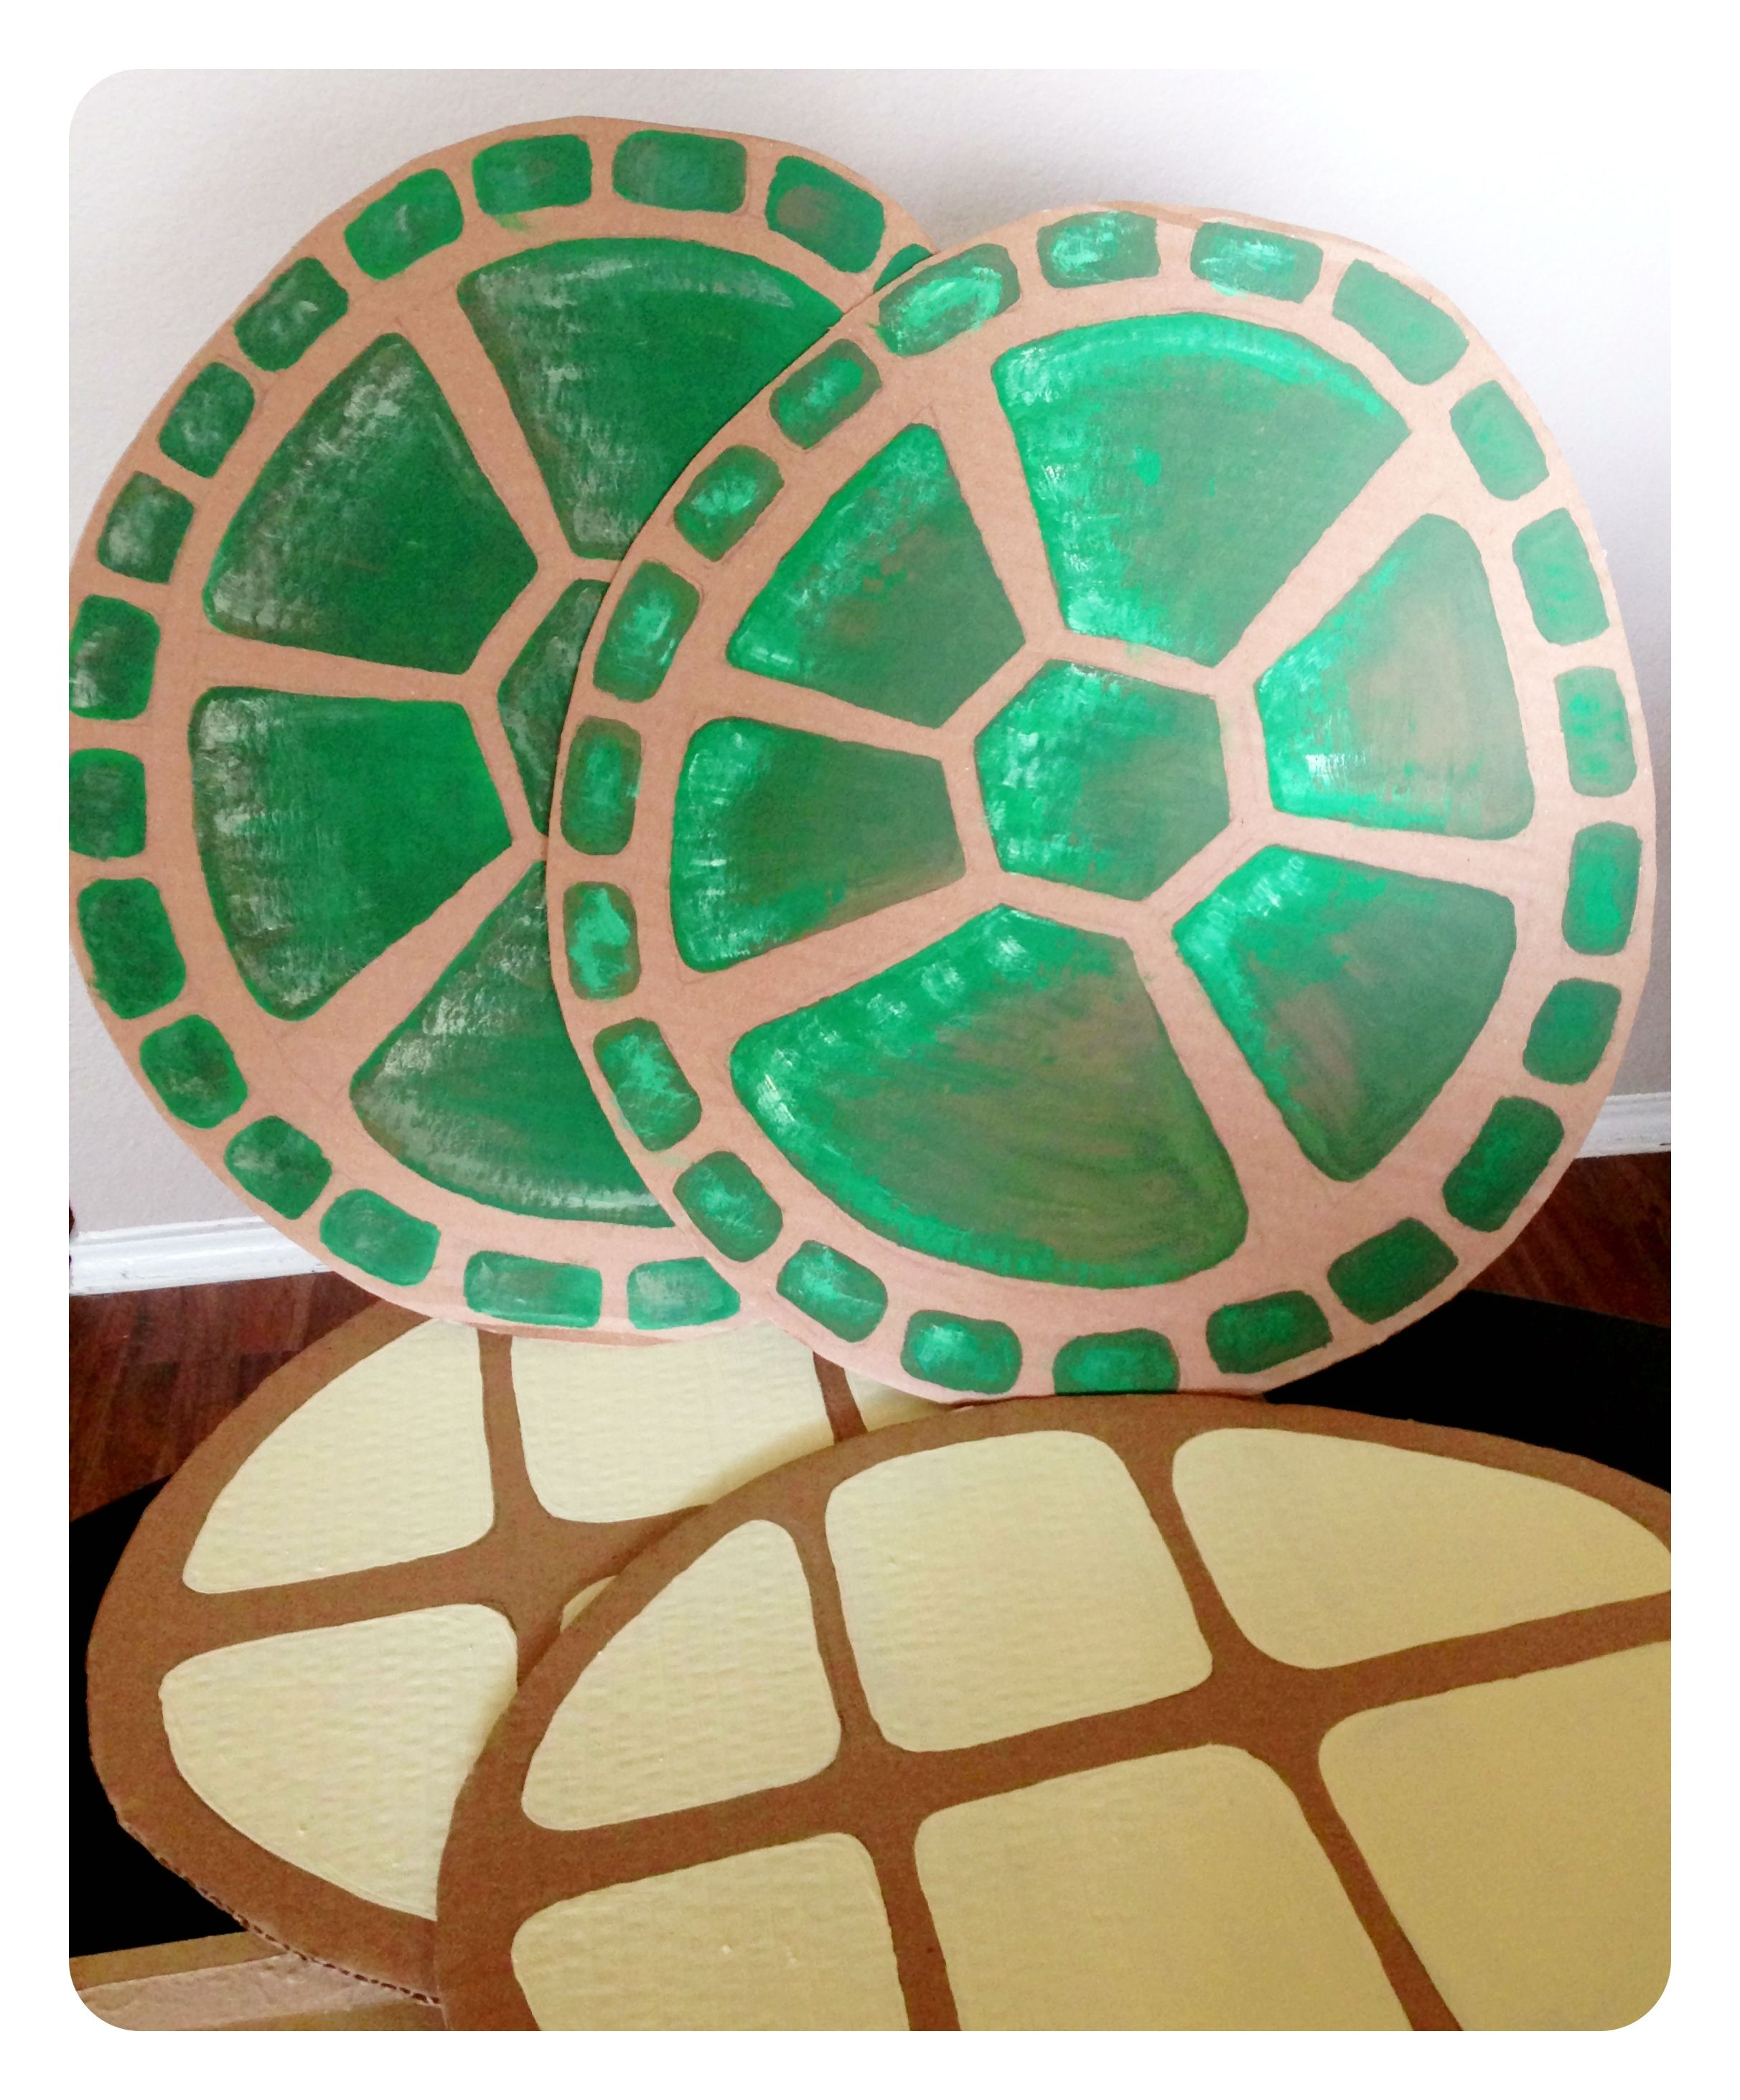 how to make a turtle shell out of cardboard